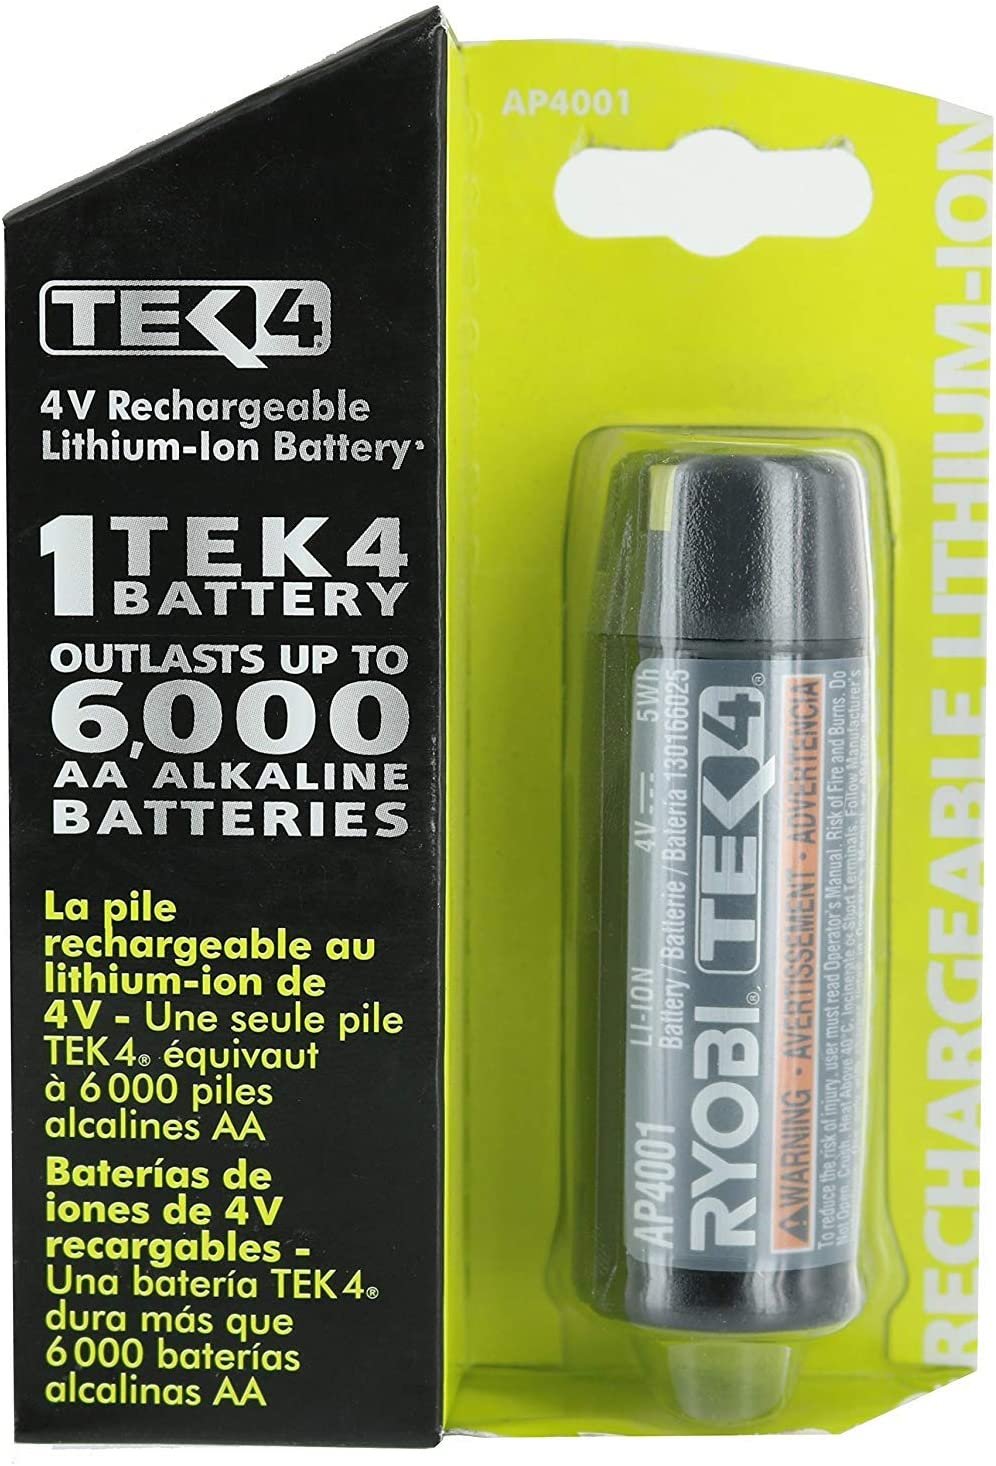 Ryobi AP4001 Genuine OEM Tek4e 4 Volt Compact Lithium Ion Rechargeable Battery Pack (Charger Not Included, Battery Only)